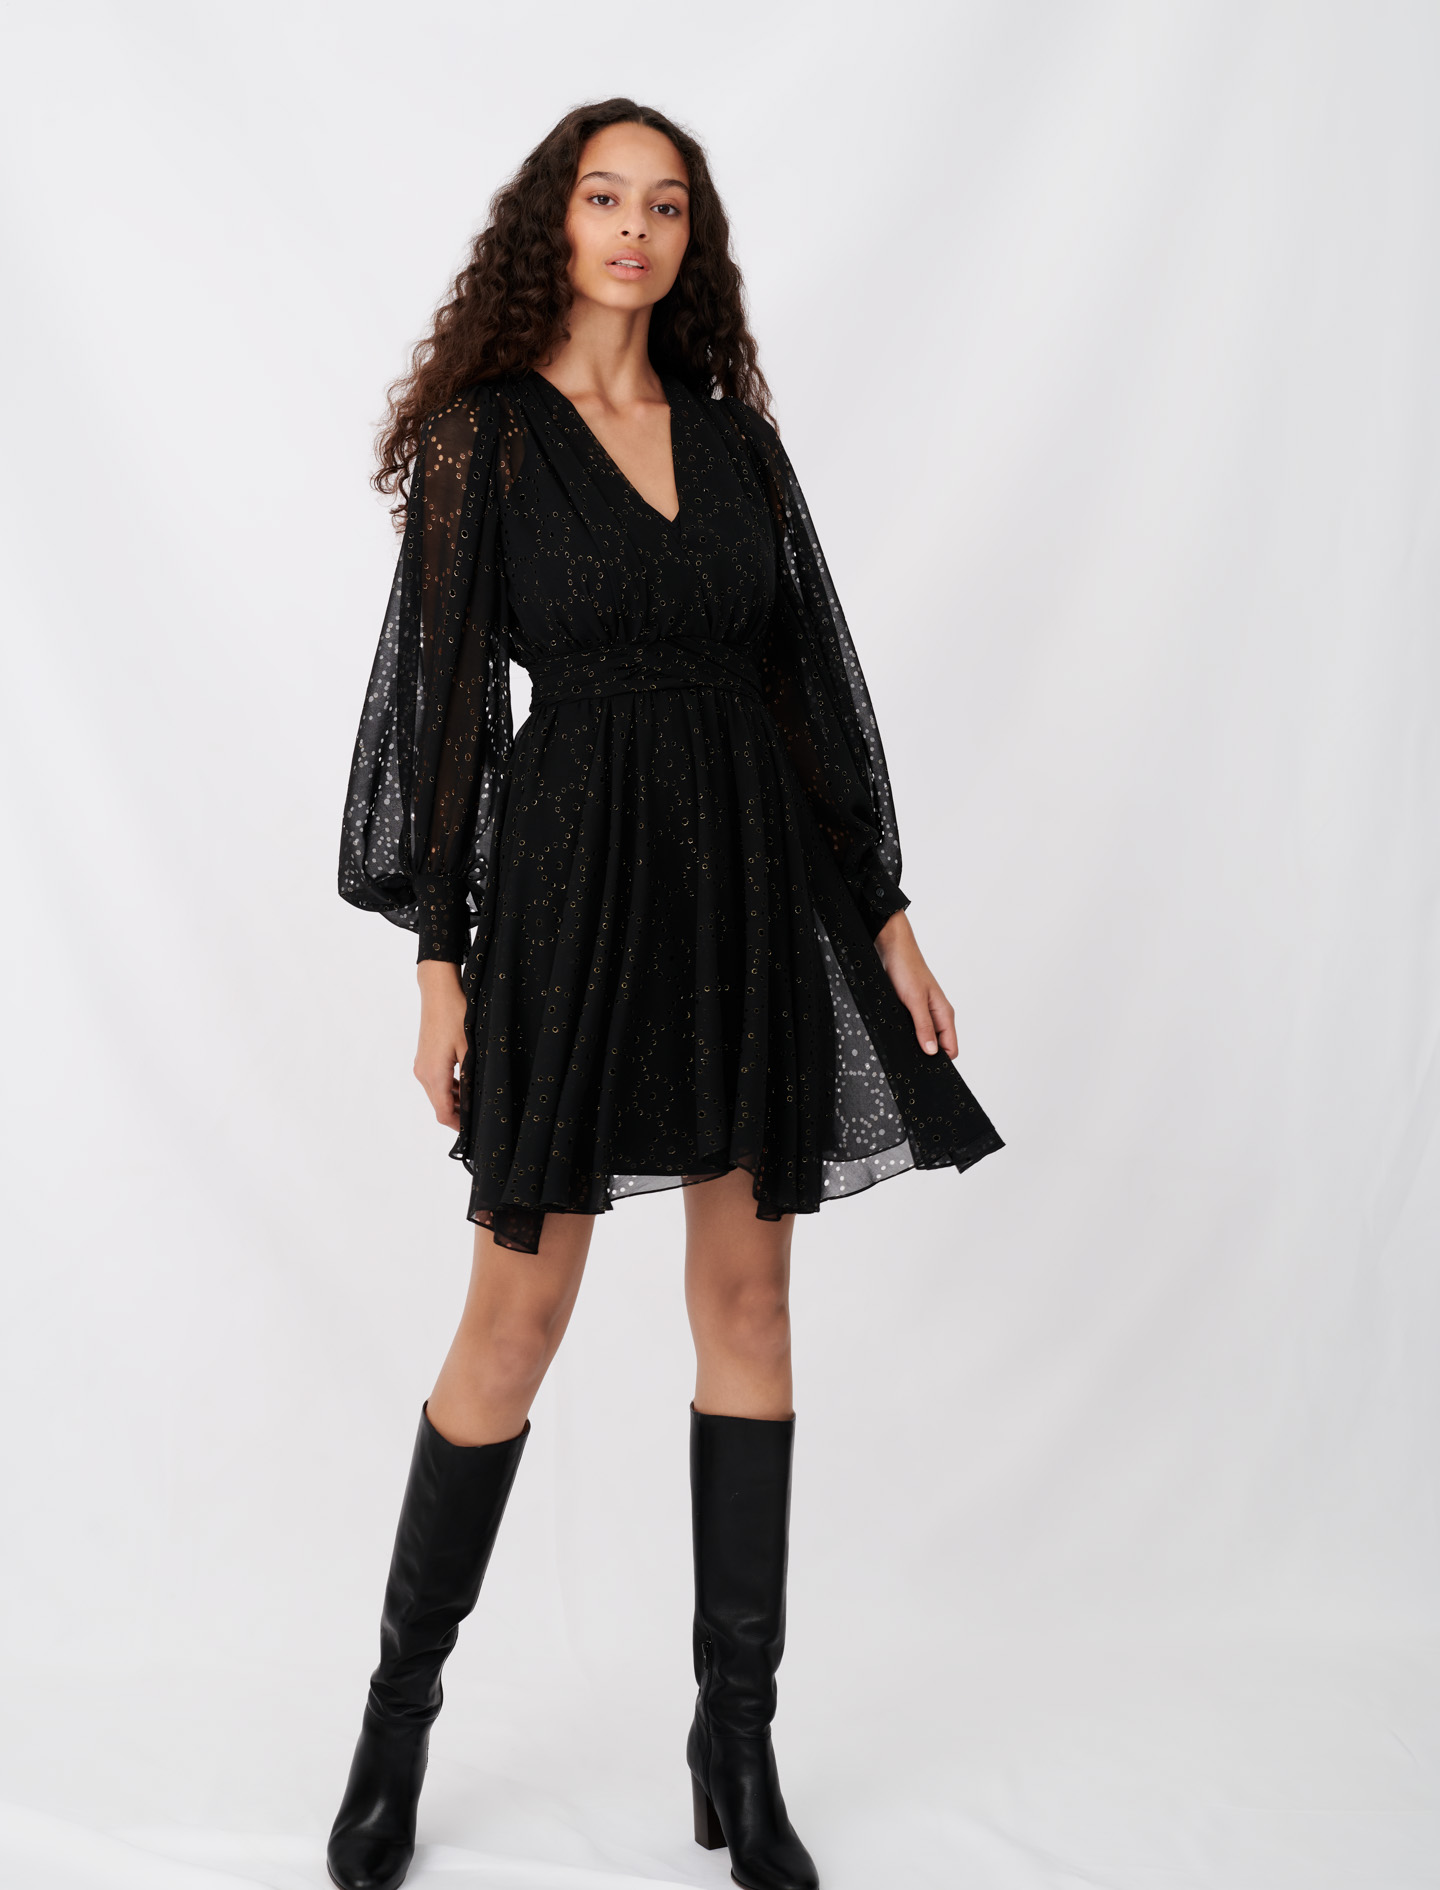 Muslin dress with openwork designs - Black